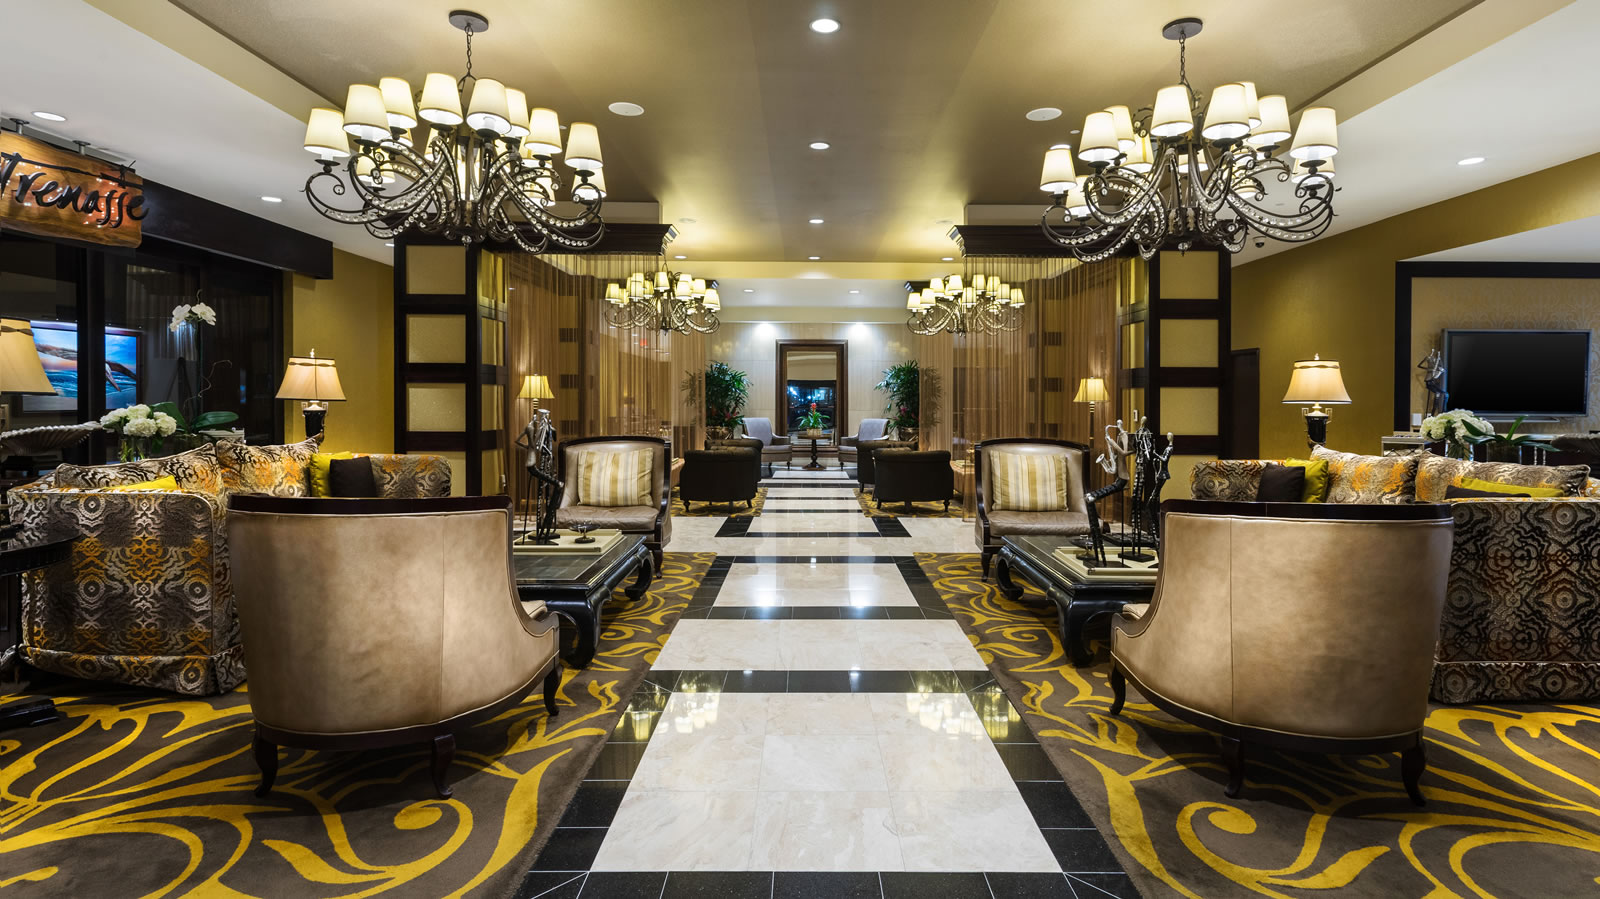 Intercontinental gay travel guide New Orleans